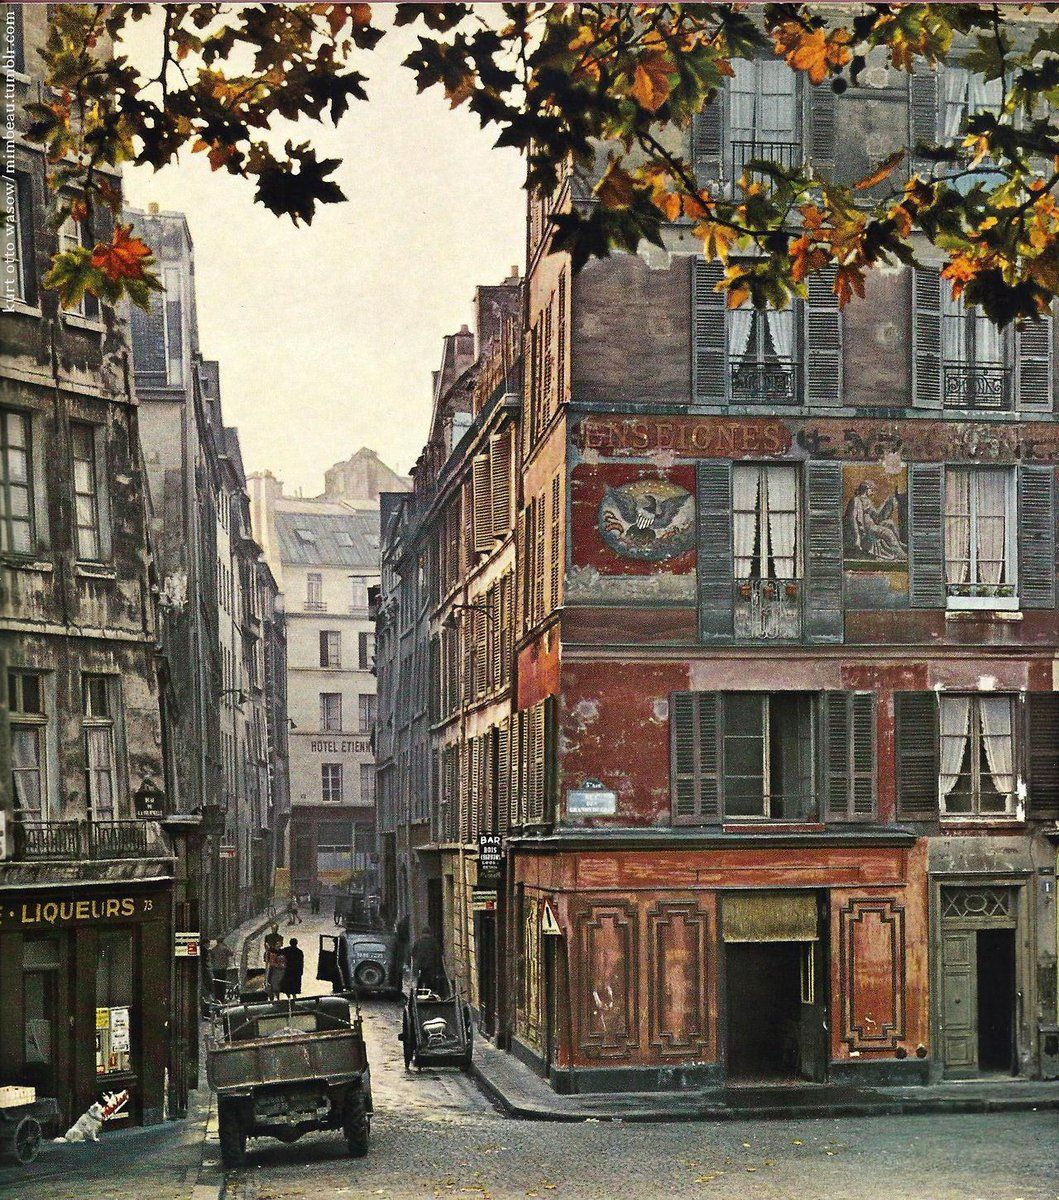 L'Ile de la Cité, #Paris 1950s,  #Photo Kurt Otto-Wasow http://t.co/qEqGSei66Q | rt @Brindille_